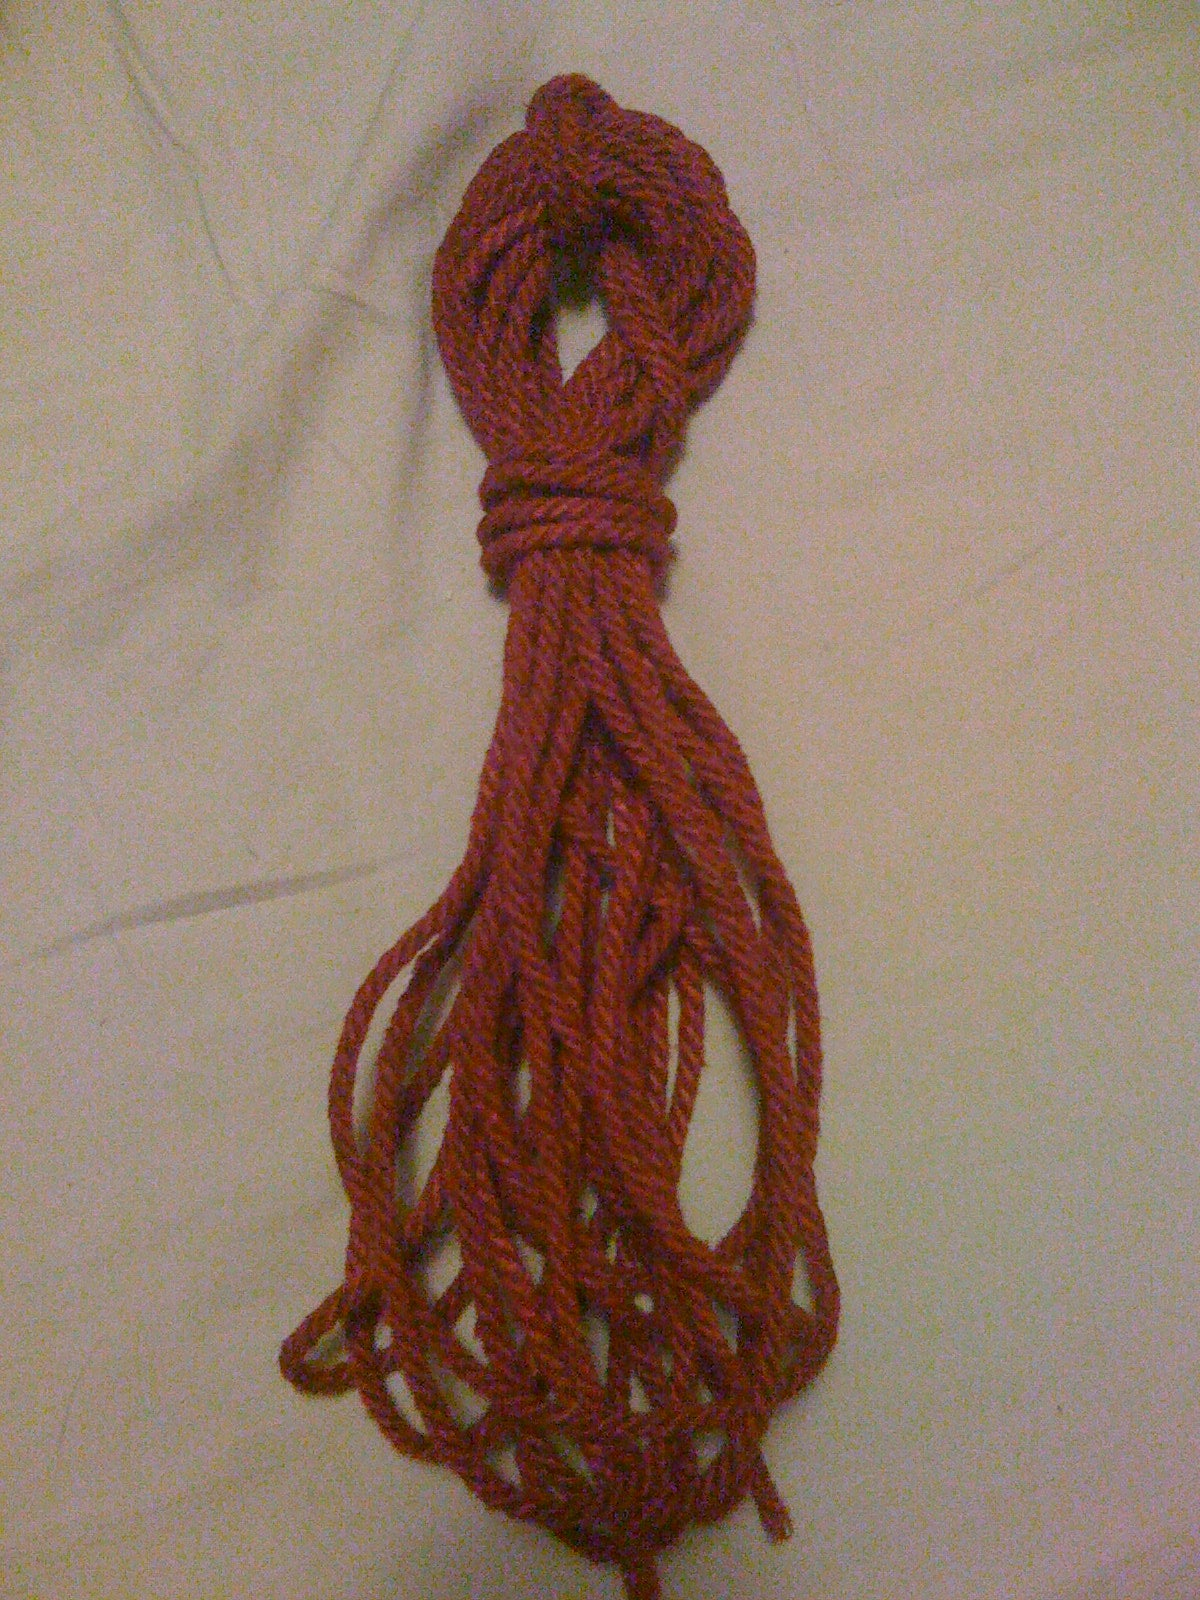 Condition and Dye Your Own Hemp Rope